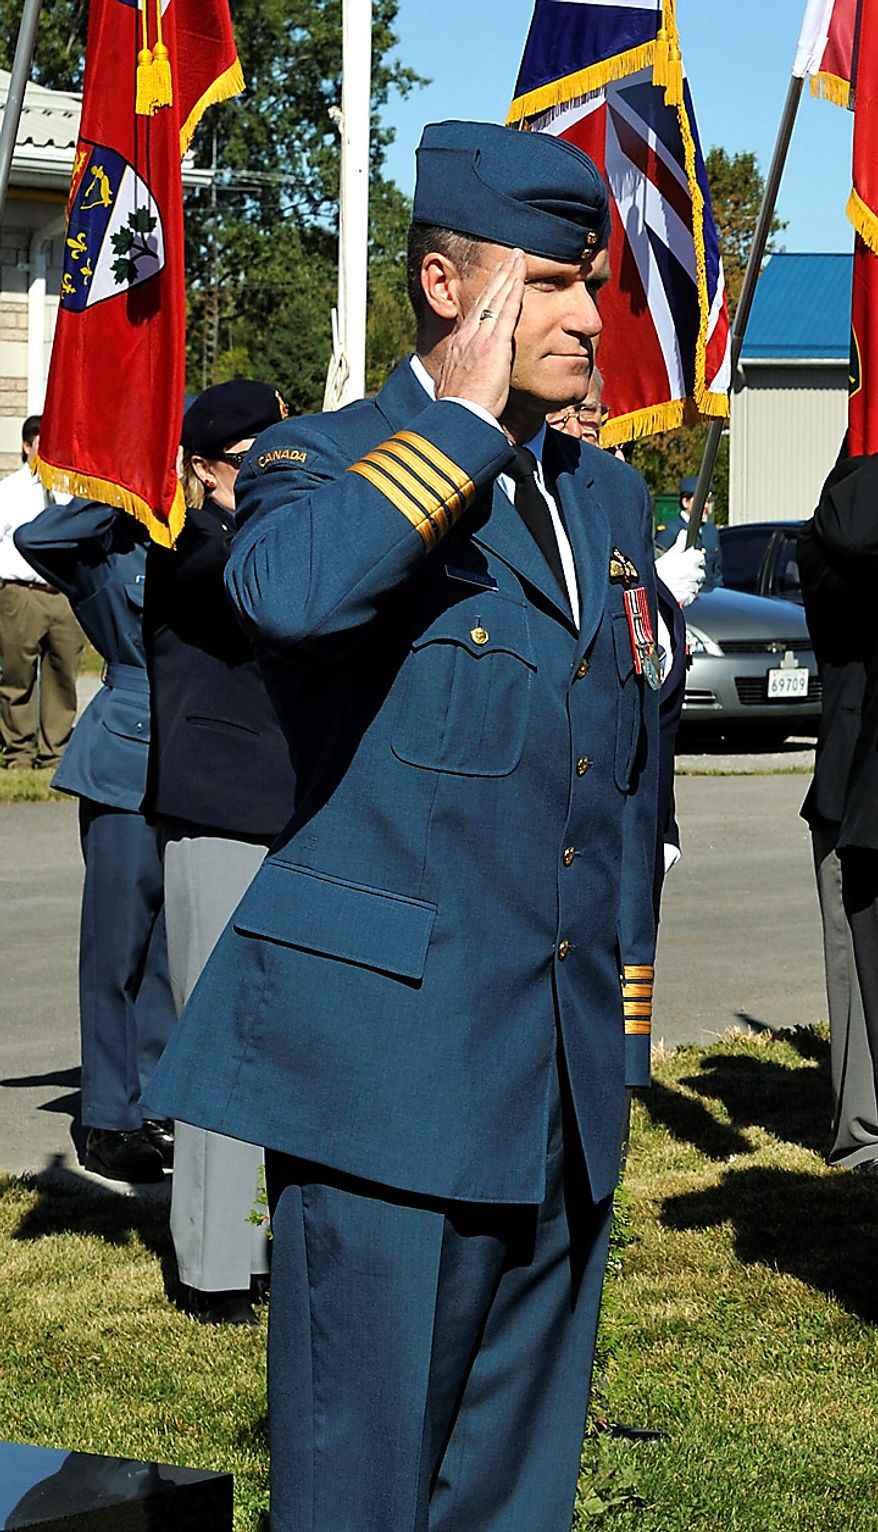 ** FILE ** Col. Russell Williams salutes as he arrives at the Battle of Britain parade in Trenton, Ontario, in September 2009. Michael Edelson, Col. Williams' lawyer, told a judge on Thursday, Oct. 7, 2010, that his client intends to plead guilty to murder, sexual assault and dozens of breaking-and-entering charges at his next court appearance Oct. 18. (AP Photo/Canadian Department of National Defense via Canadian Press)